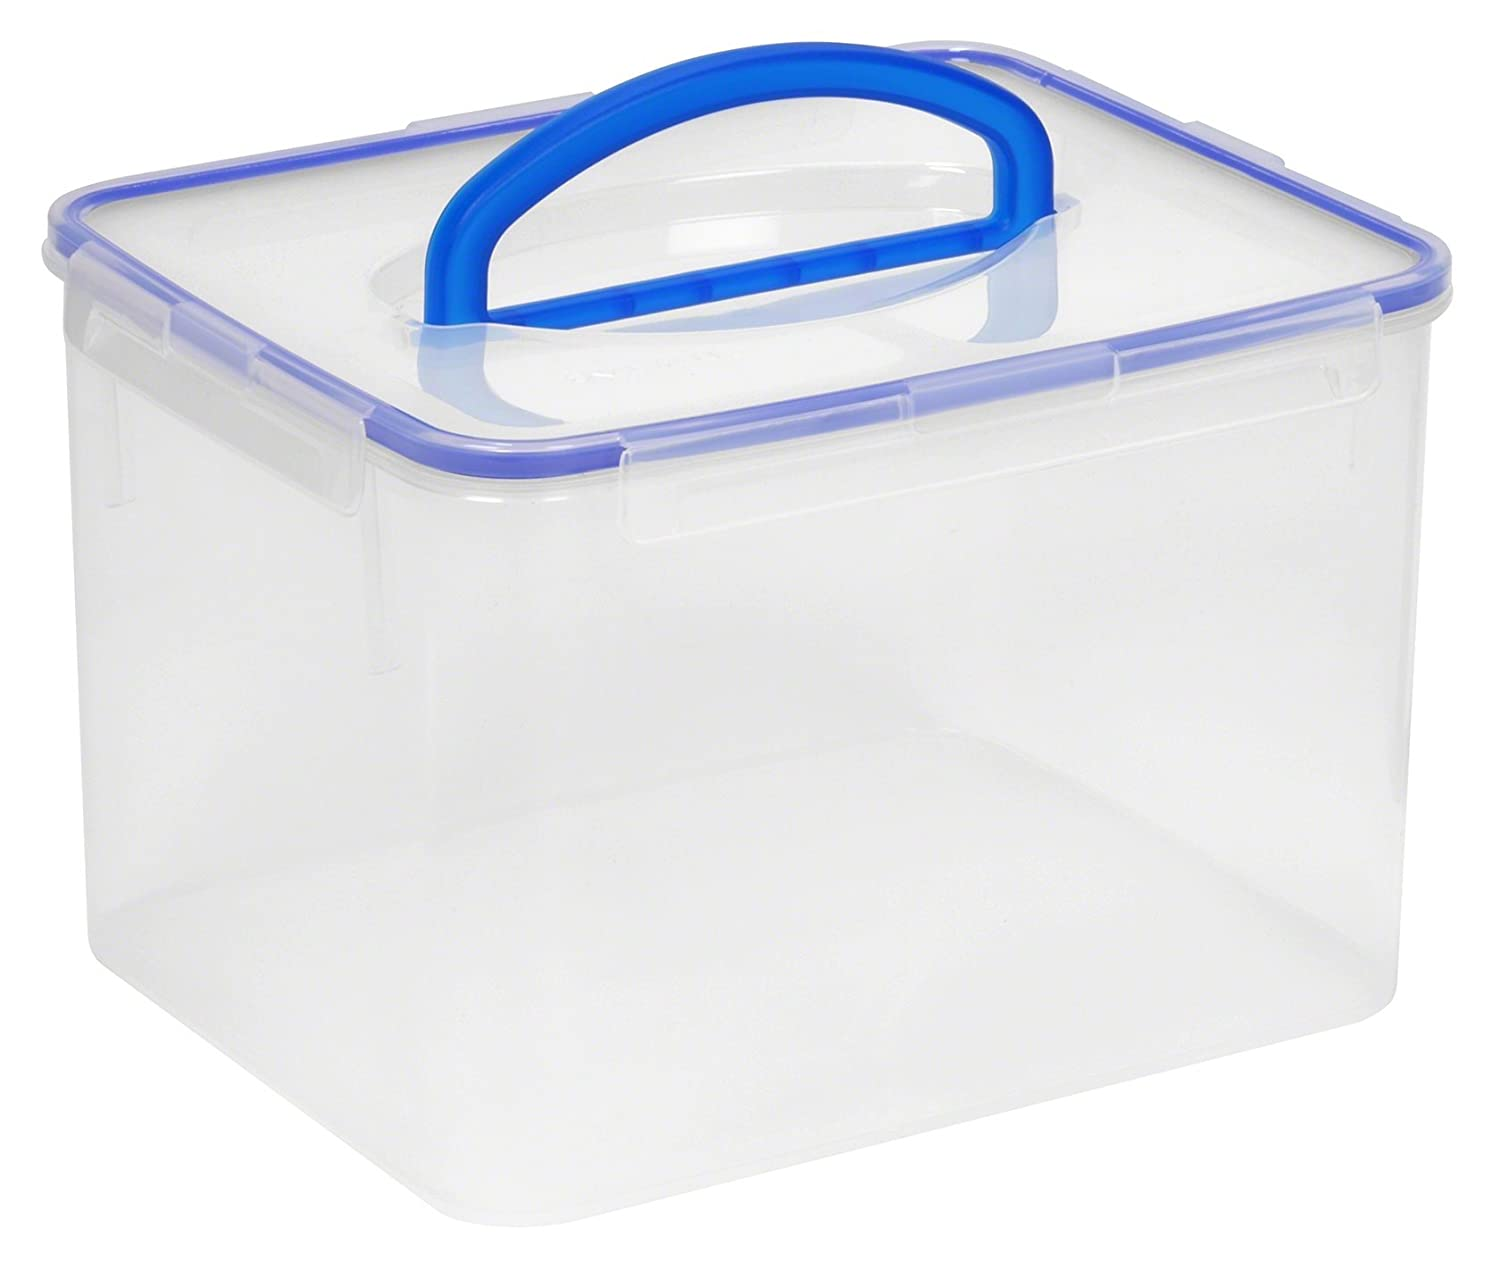 Amazoncom Snapware Airtight 29 Cup Rectangular Food Storage